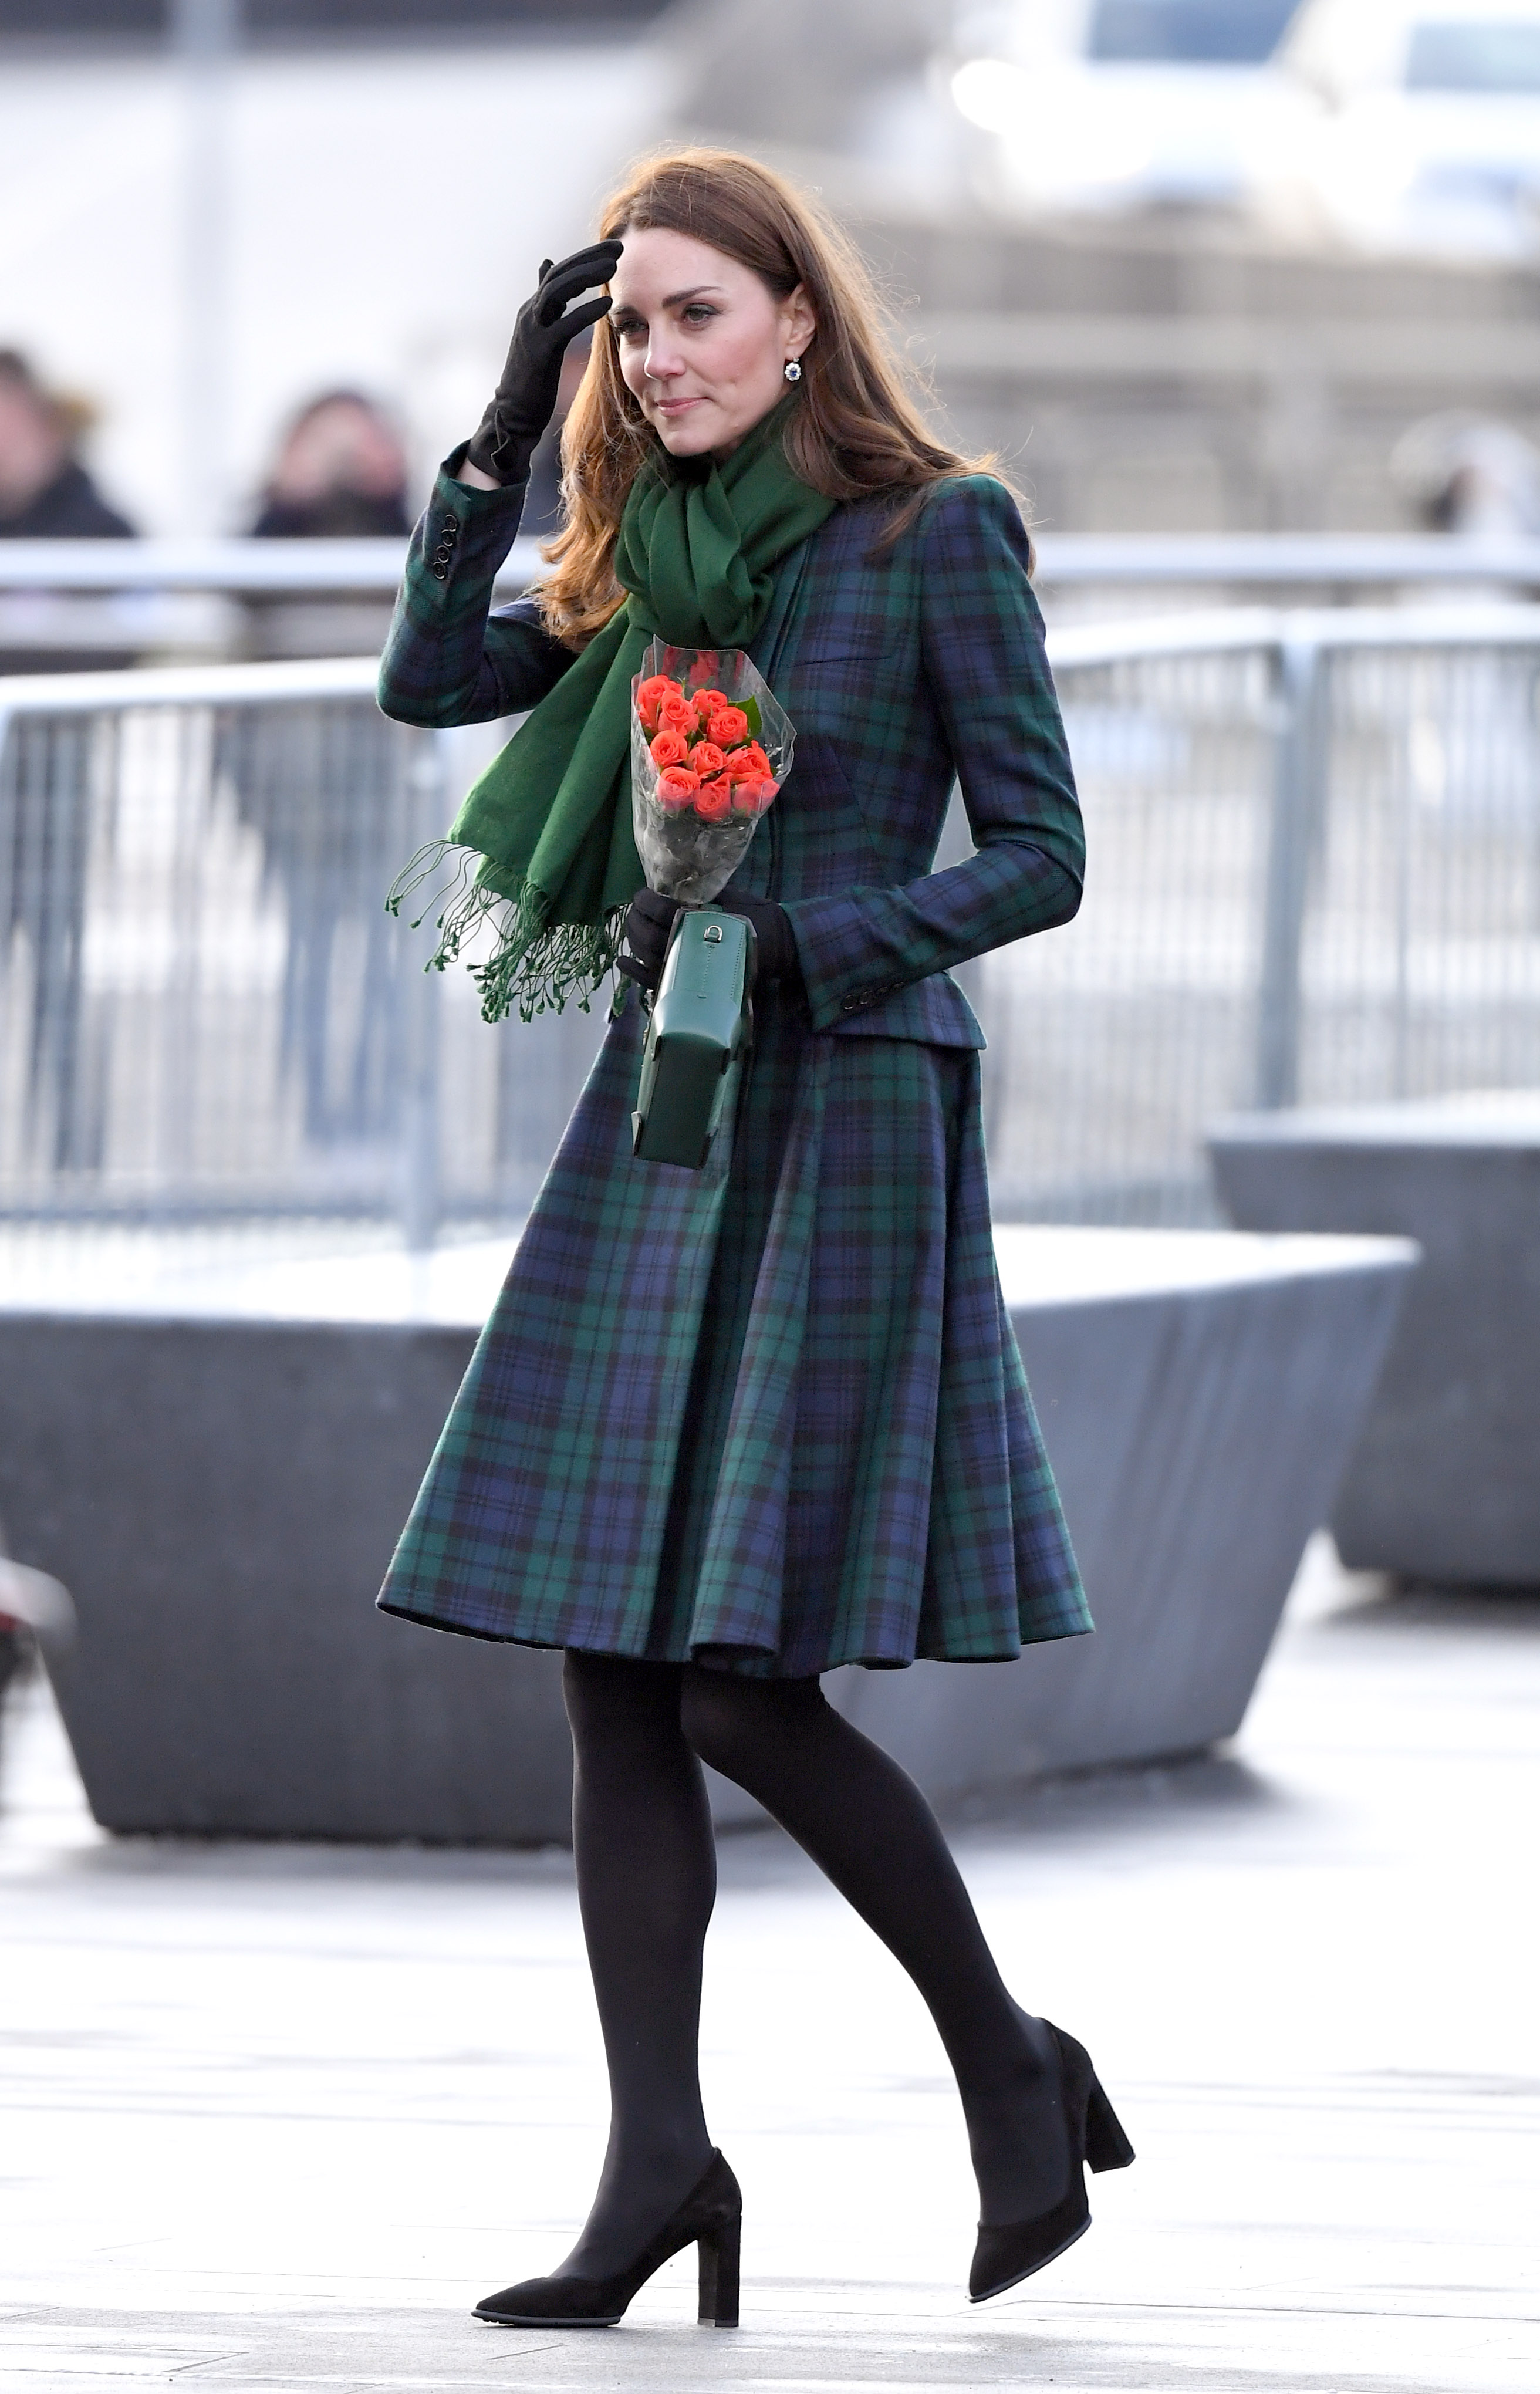 DUNDEE, SCOTLAND - JANUARY 29:  Catherine, Duchess Of Cambridge officially opens V&A Dundee and greet members of the public on the waterfront on January 29, 2019 in Dundee, Scotland.  (Photo by Karwai Tang/WireImage)